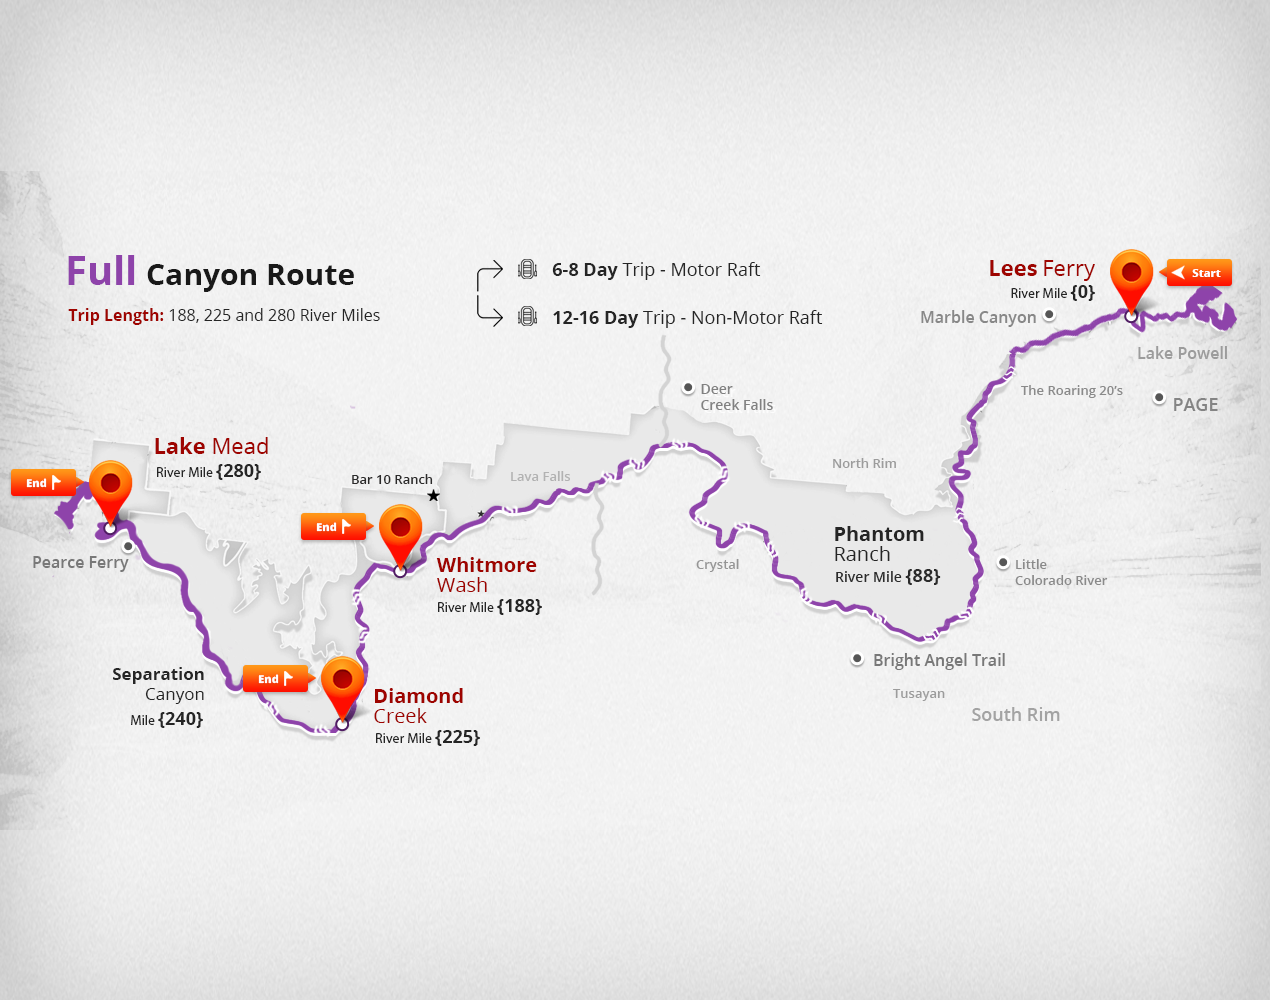 FULL GRAND CANYON ROUTE MAP